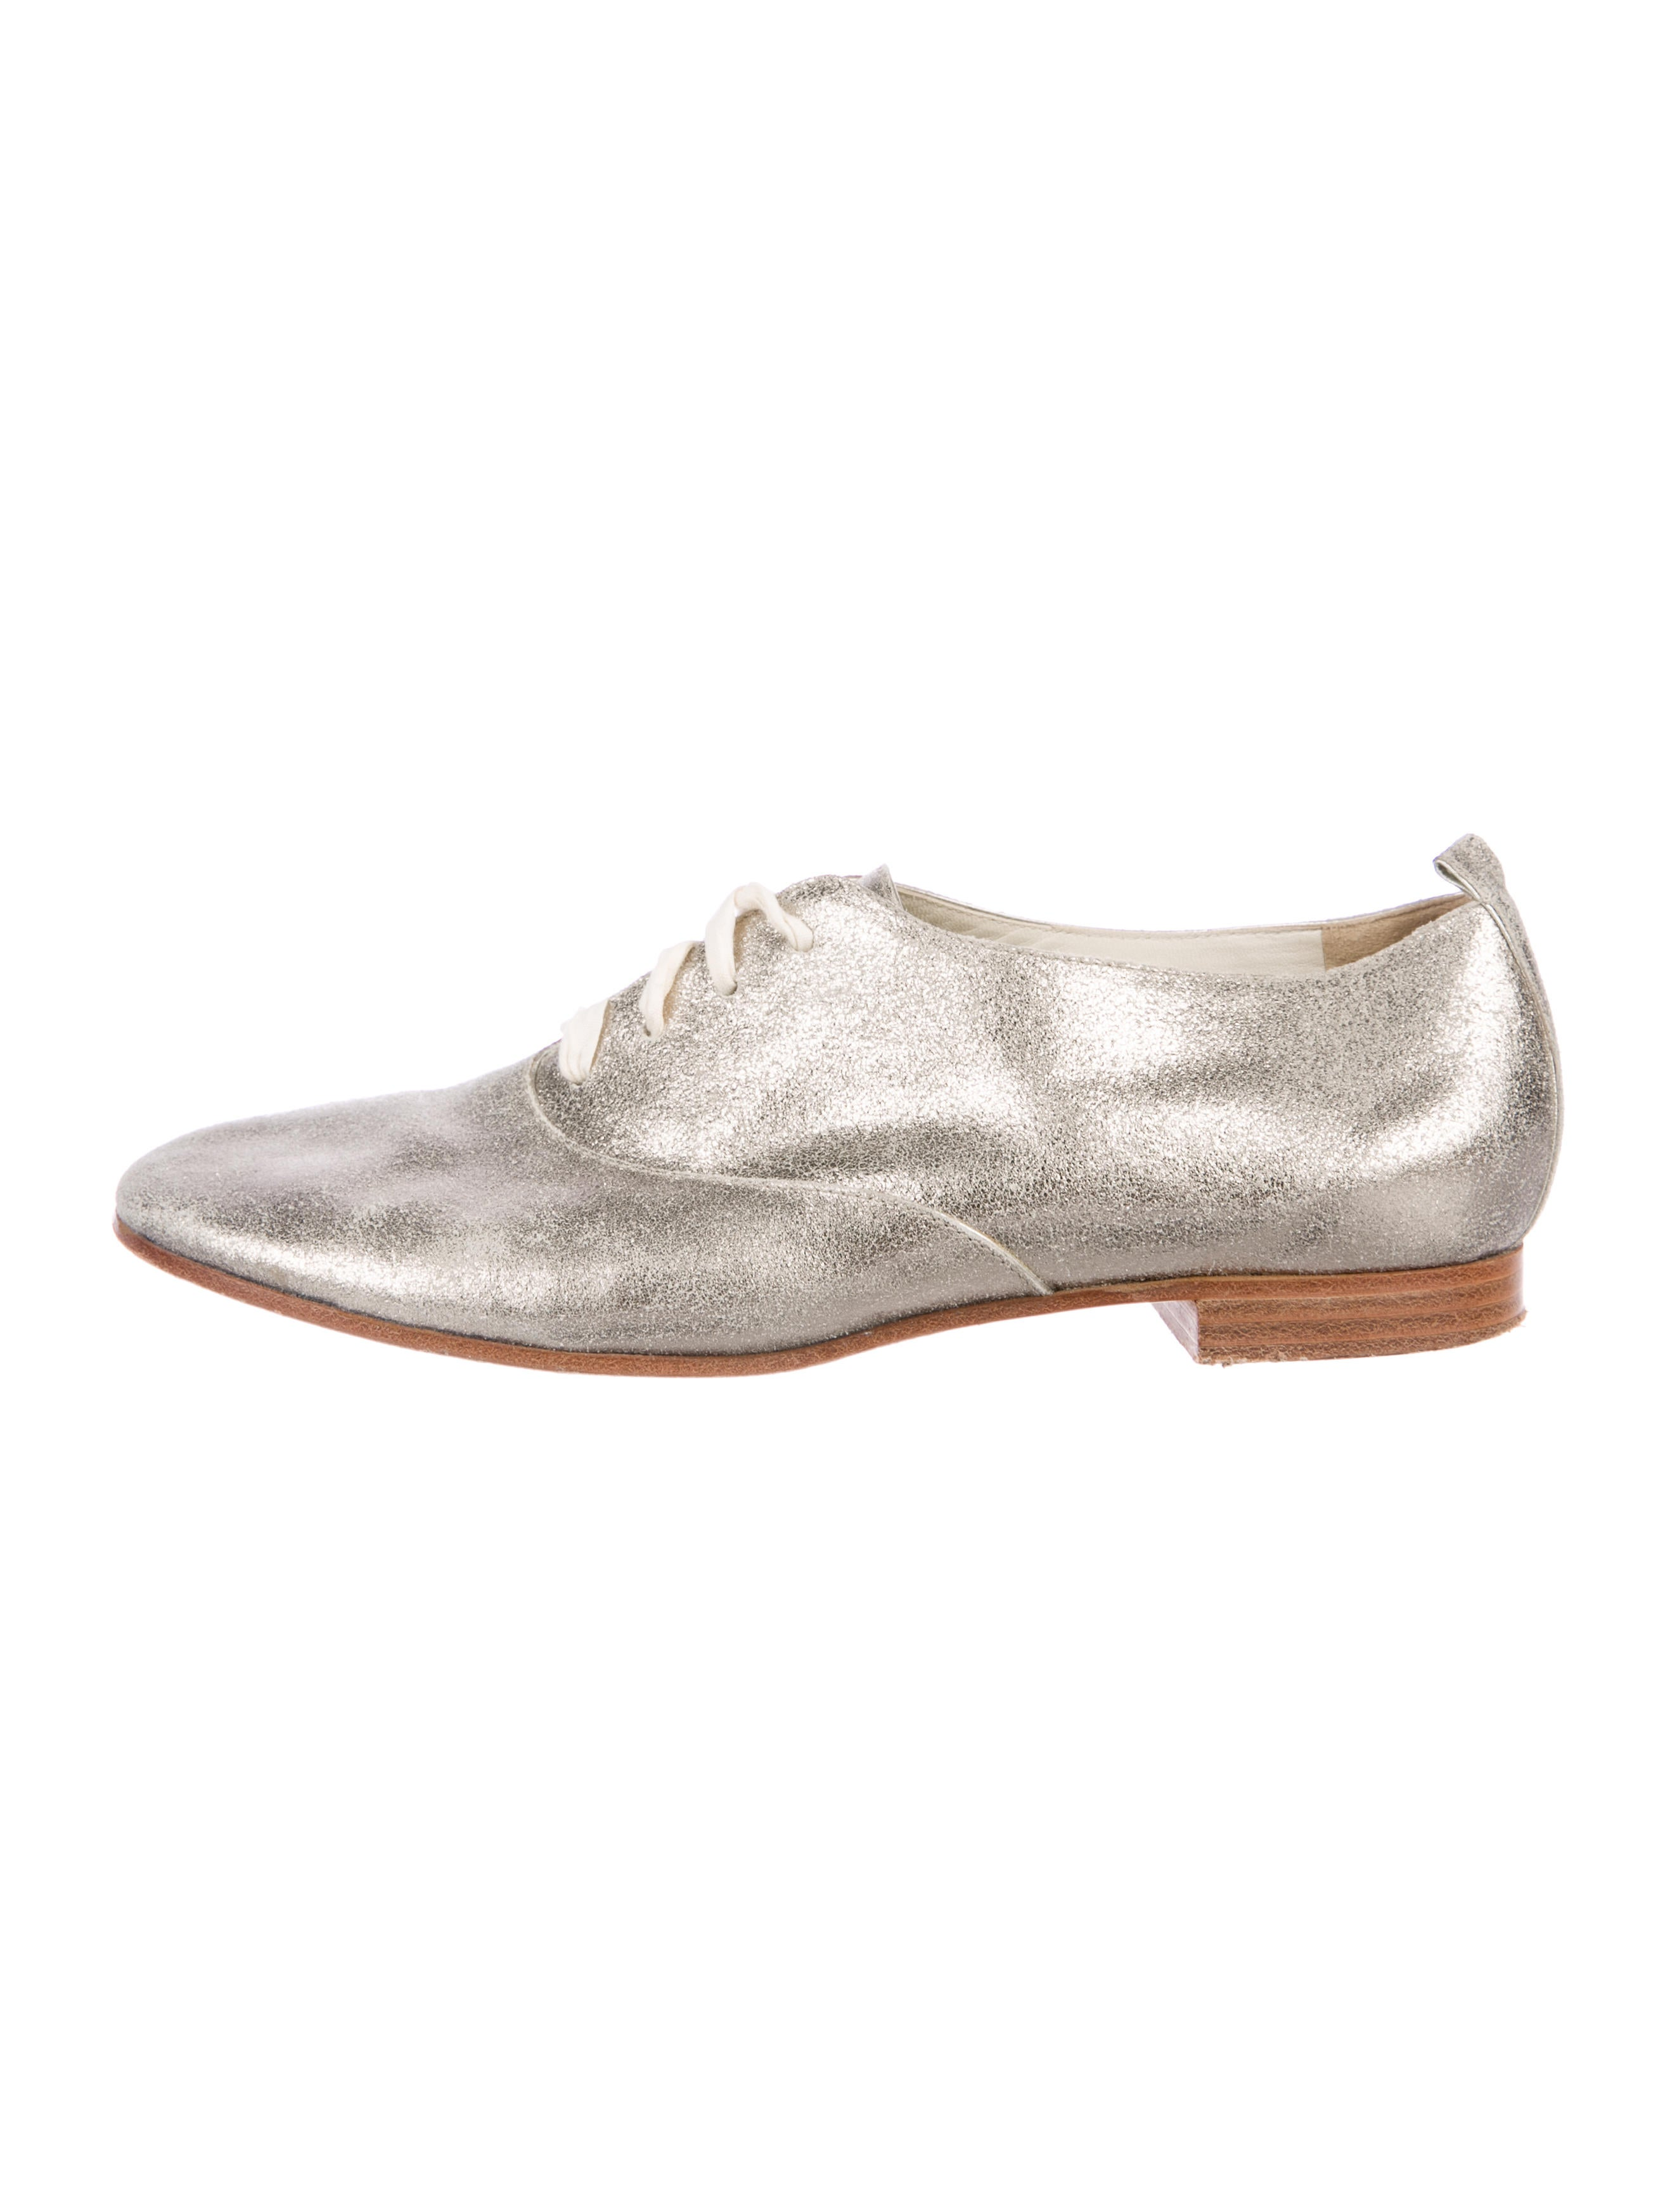 Marc Jacobs Metallic Lace-Up Oxfords discount shop for wide range of for sale outlet clearance websites Q9i7ExYpIj